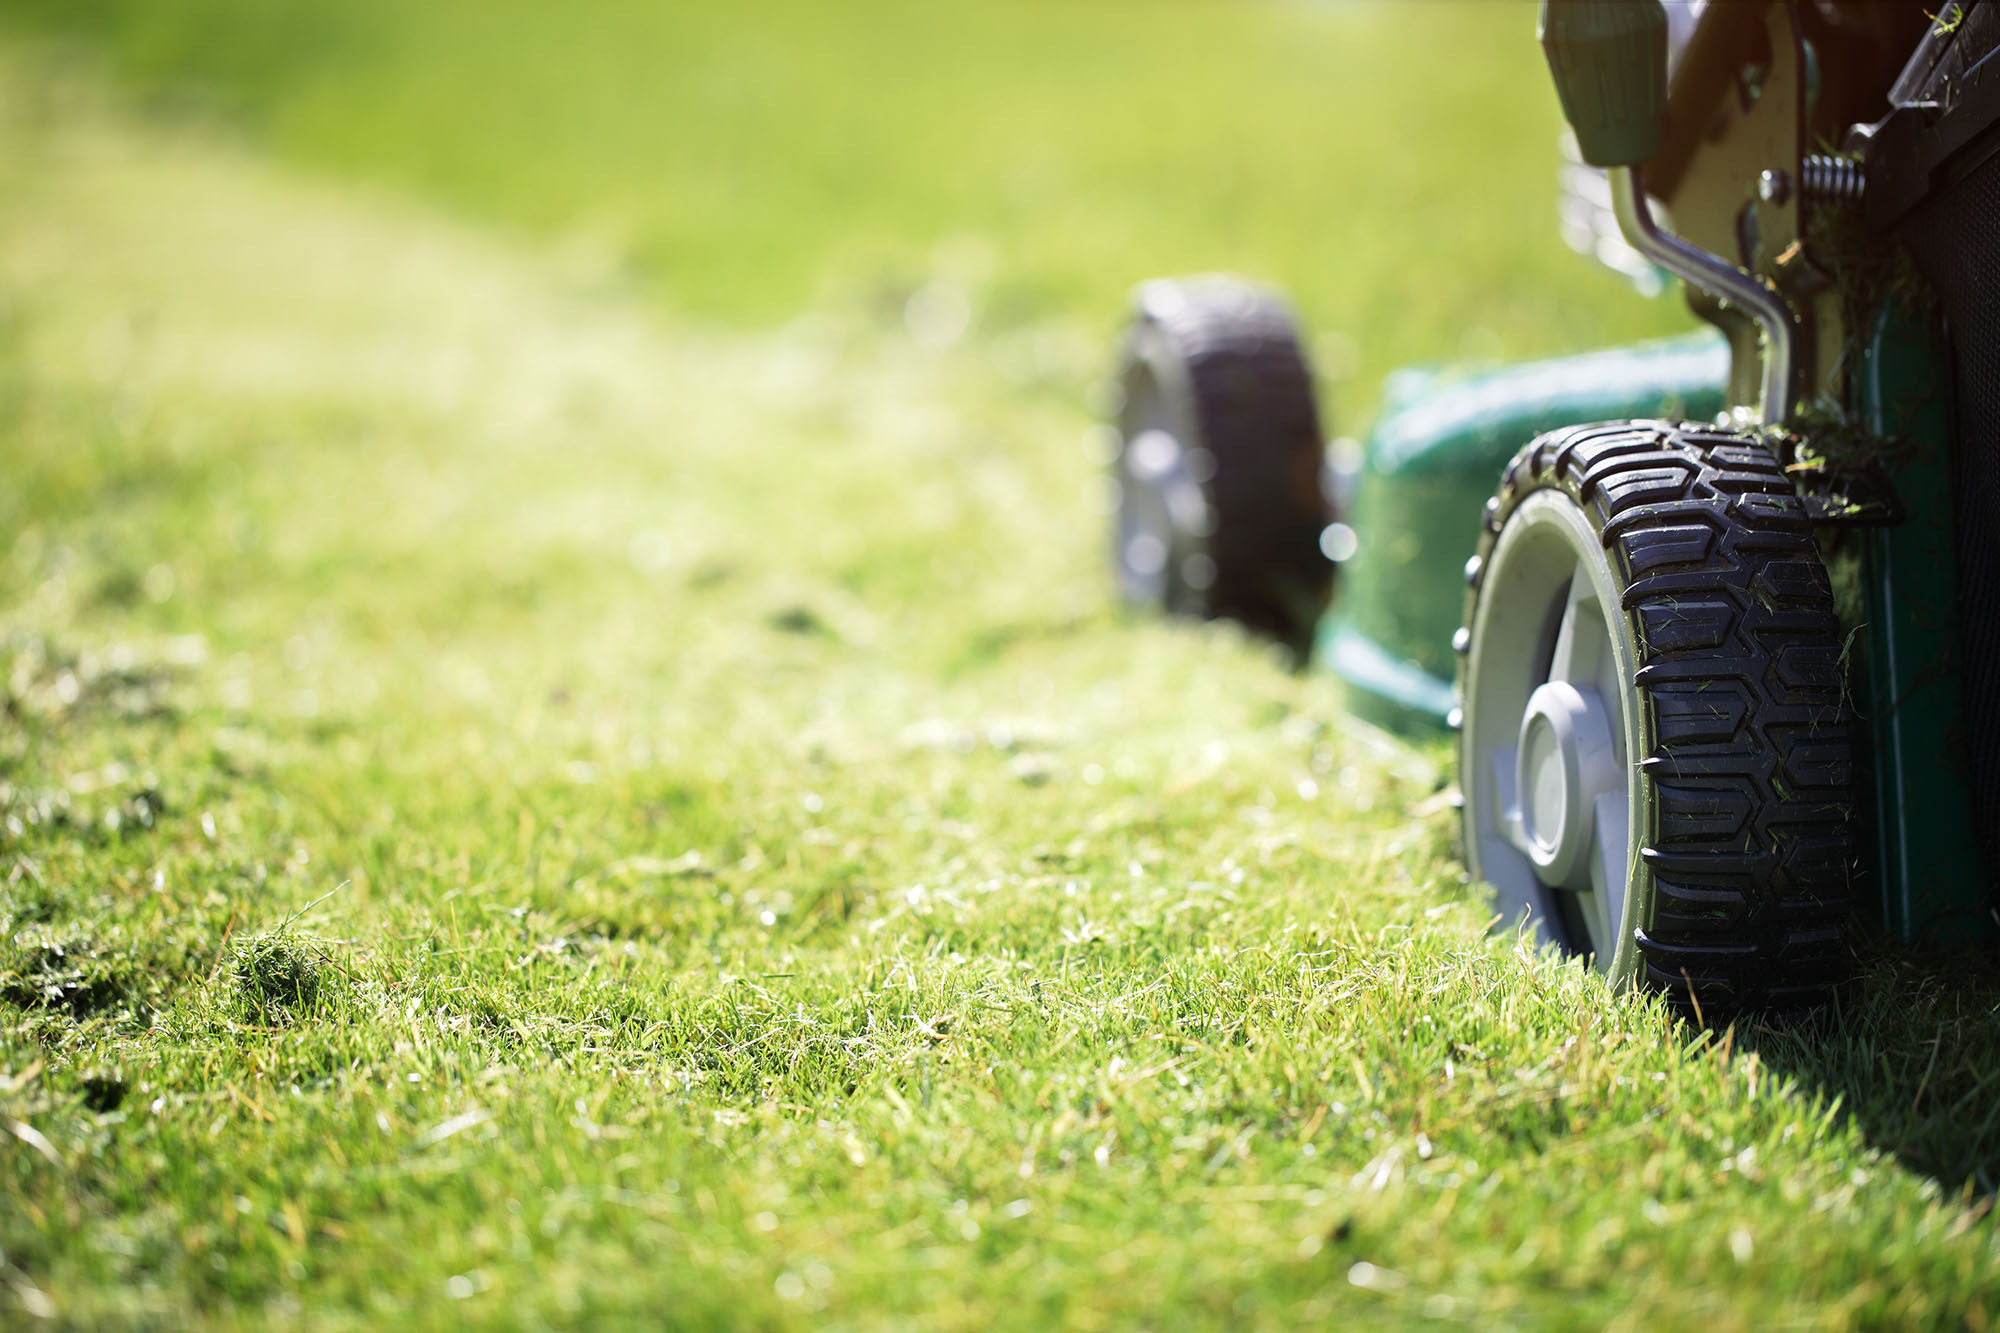 Lawn mowers can damage hearing